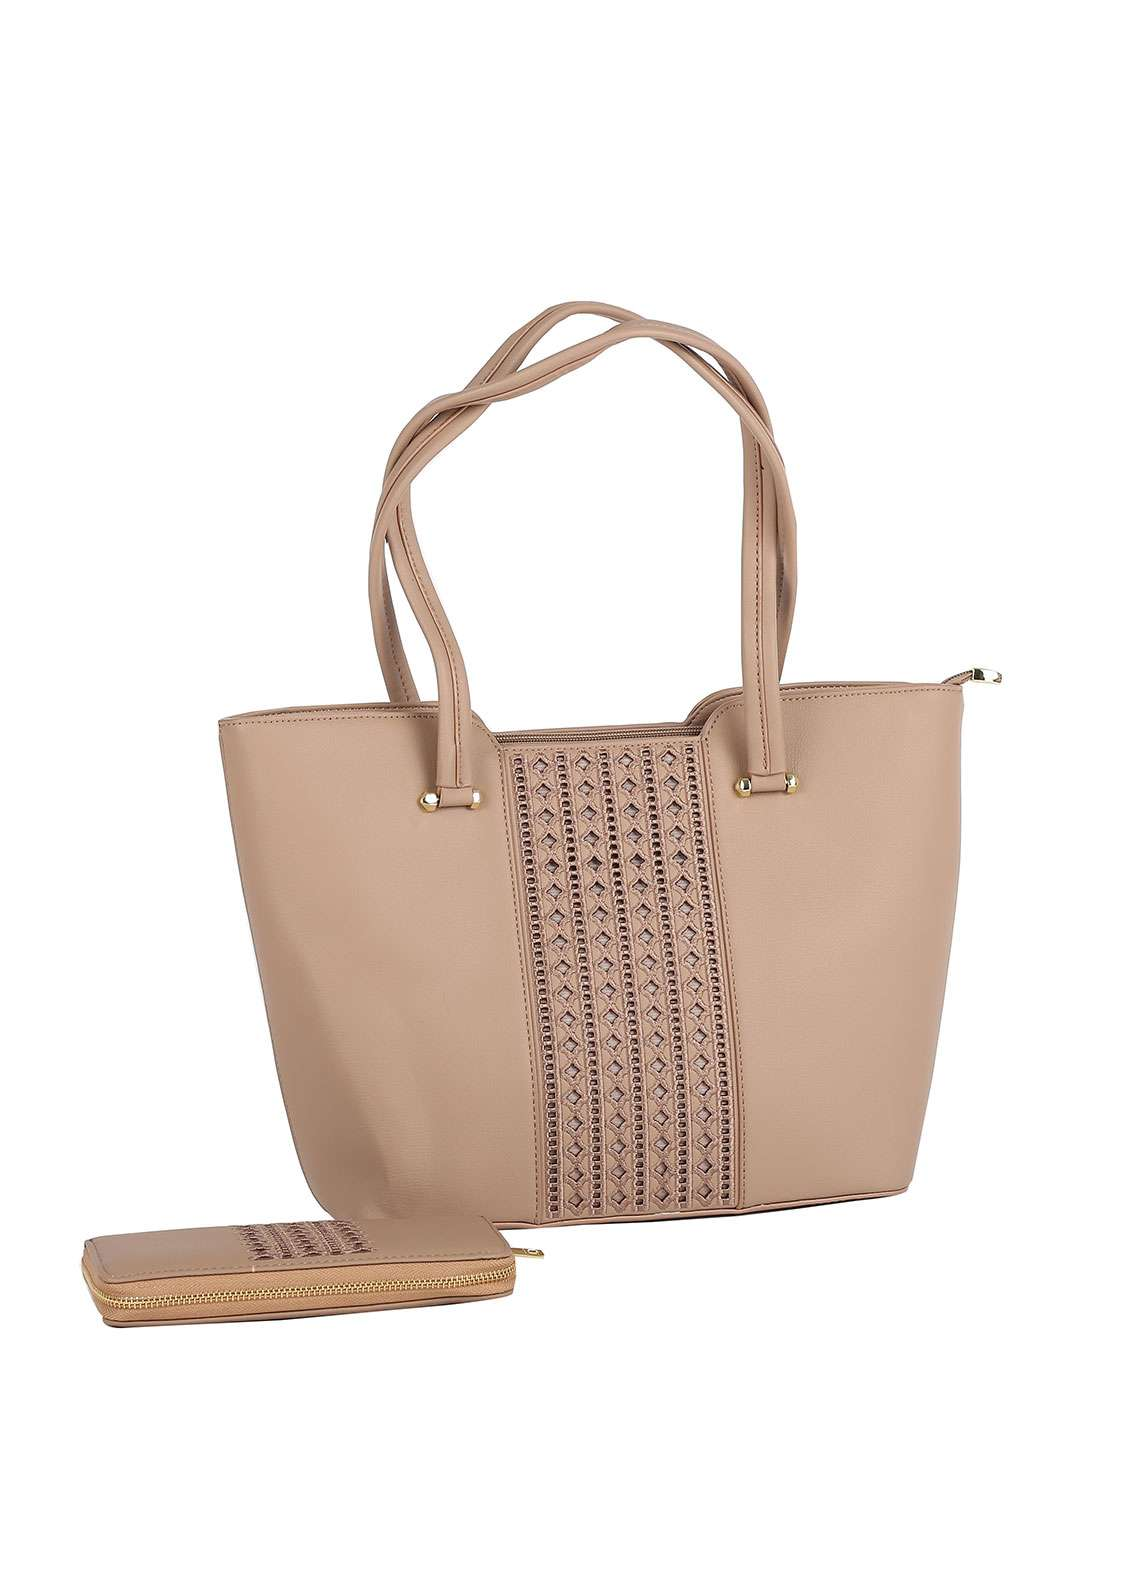 Susen PU Leather Tote Bag for Women - Beige with Stripes